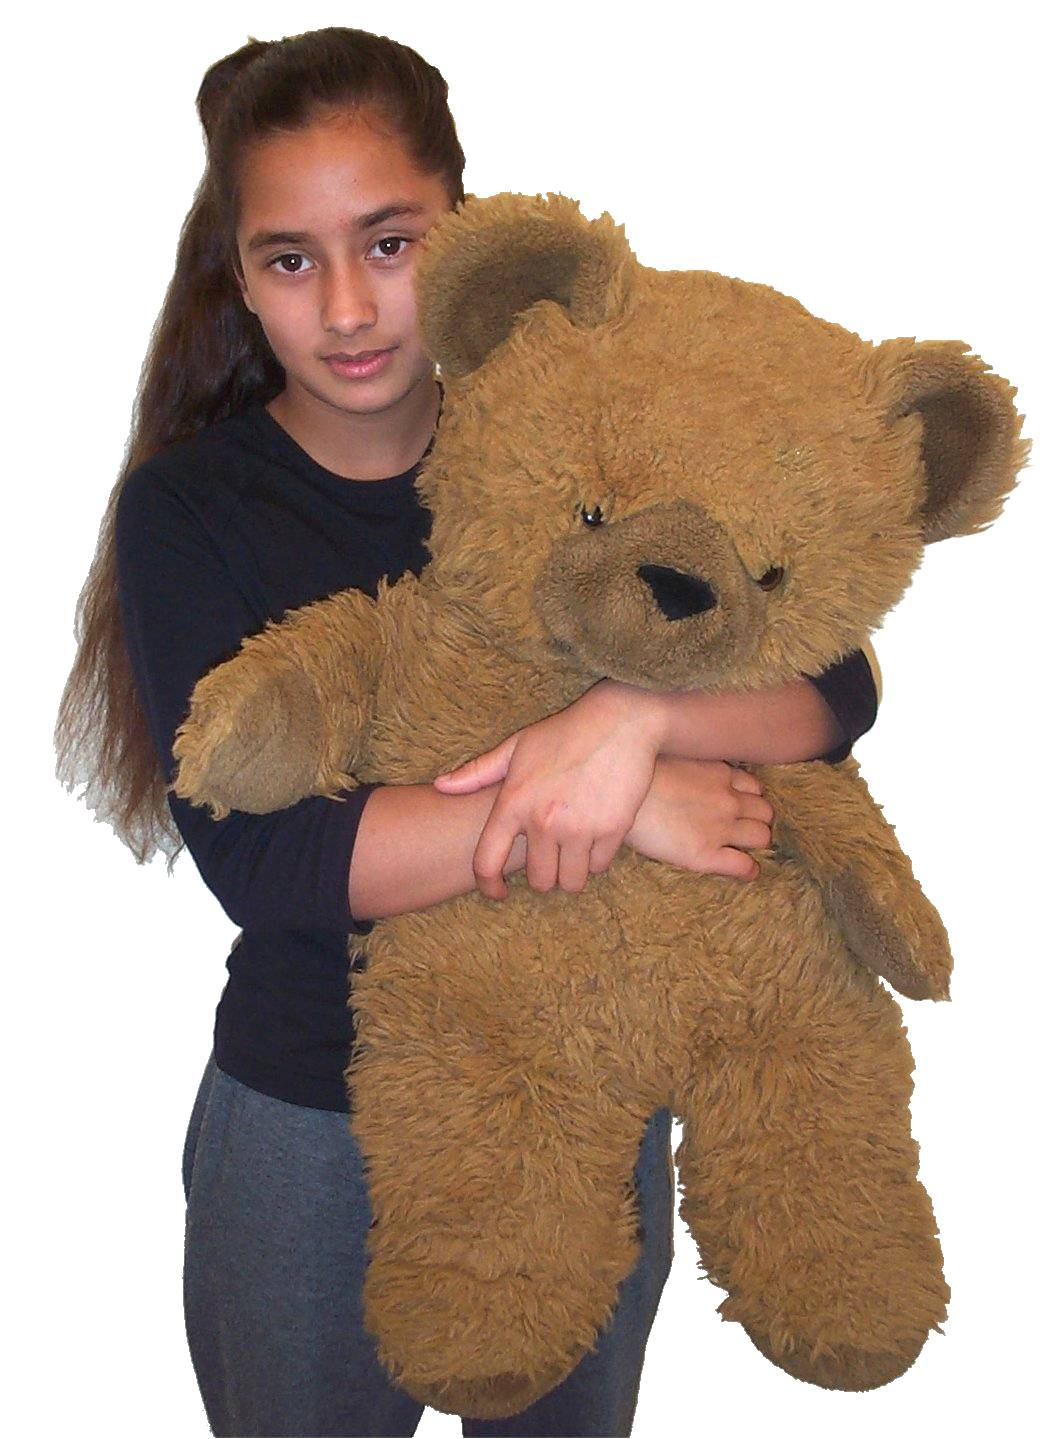 Teddybear (big).jpg